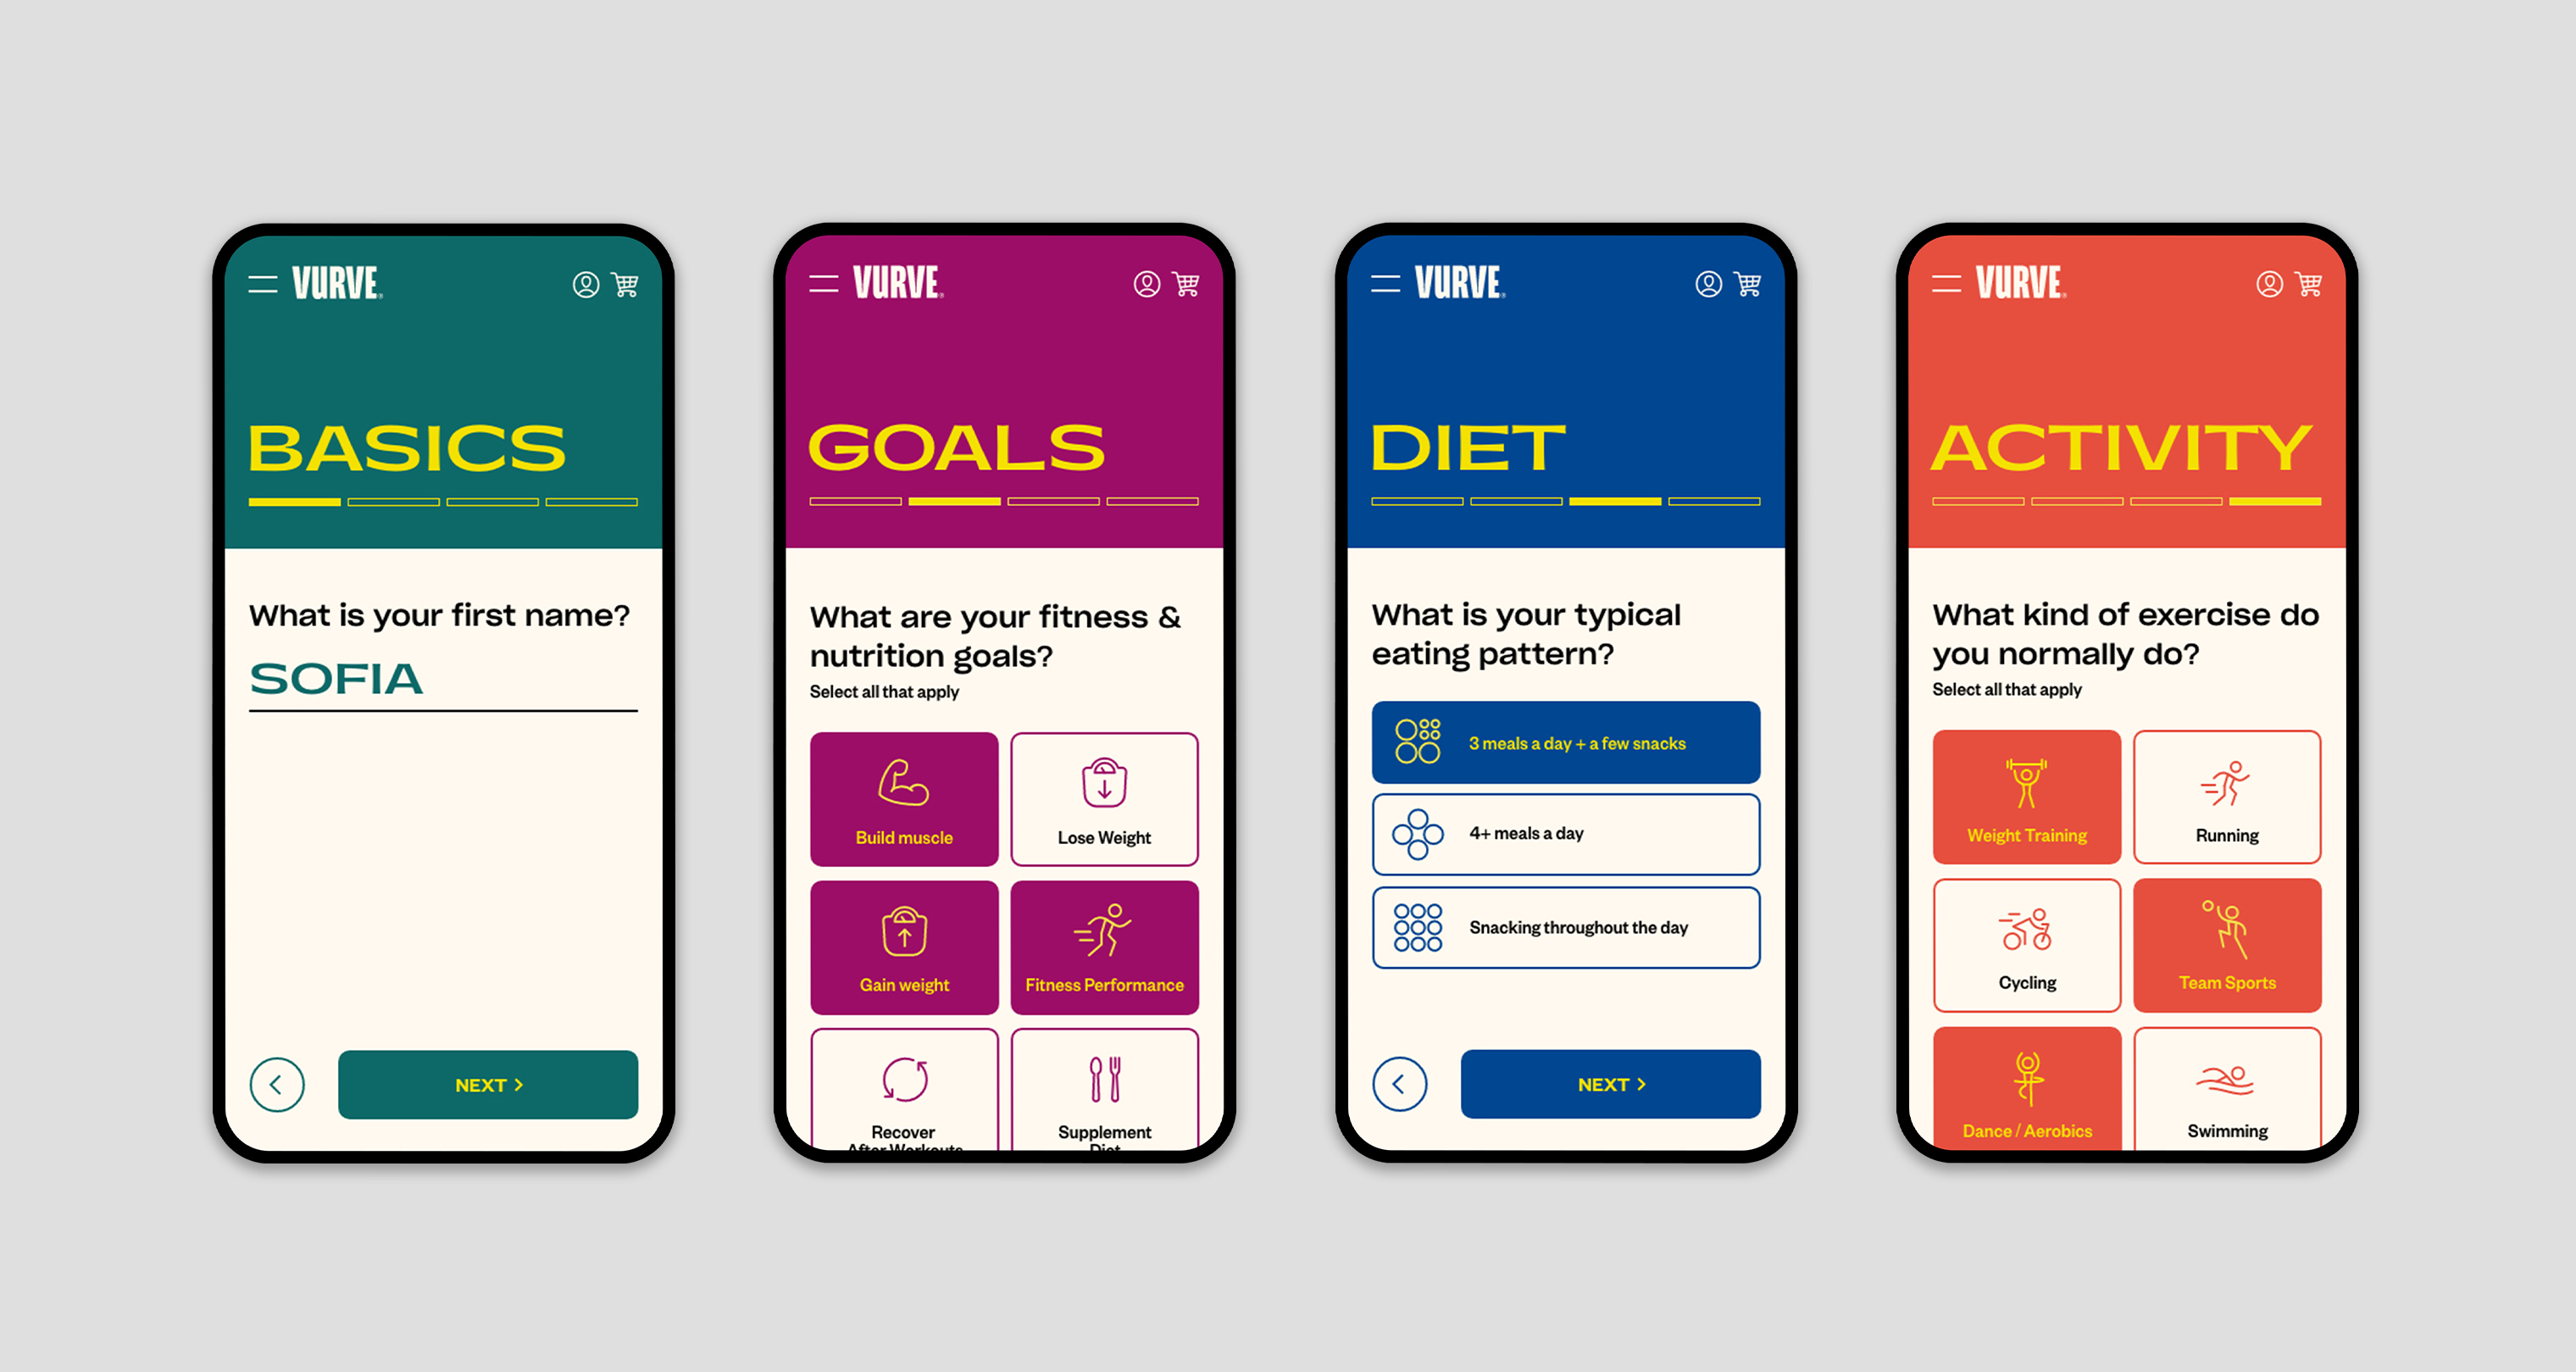 Several mobile screens of the online personalization quiz